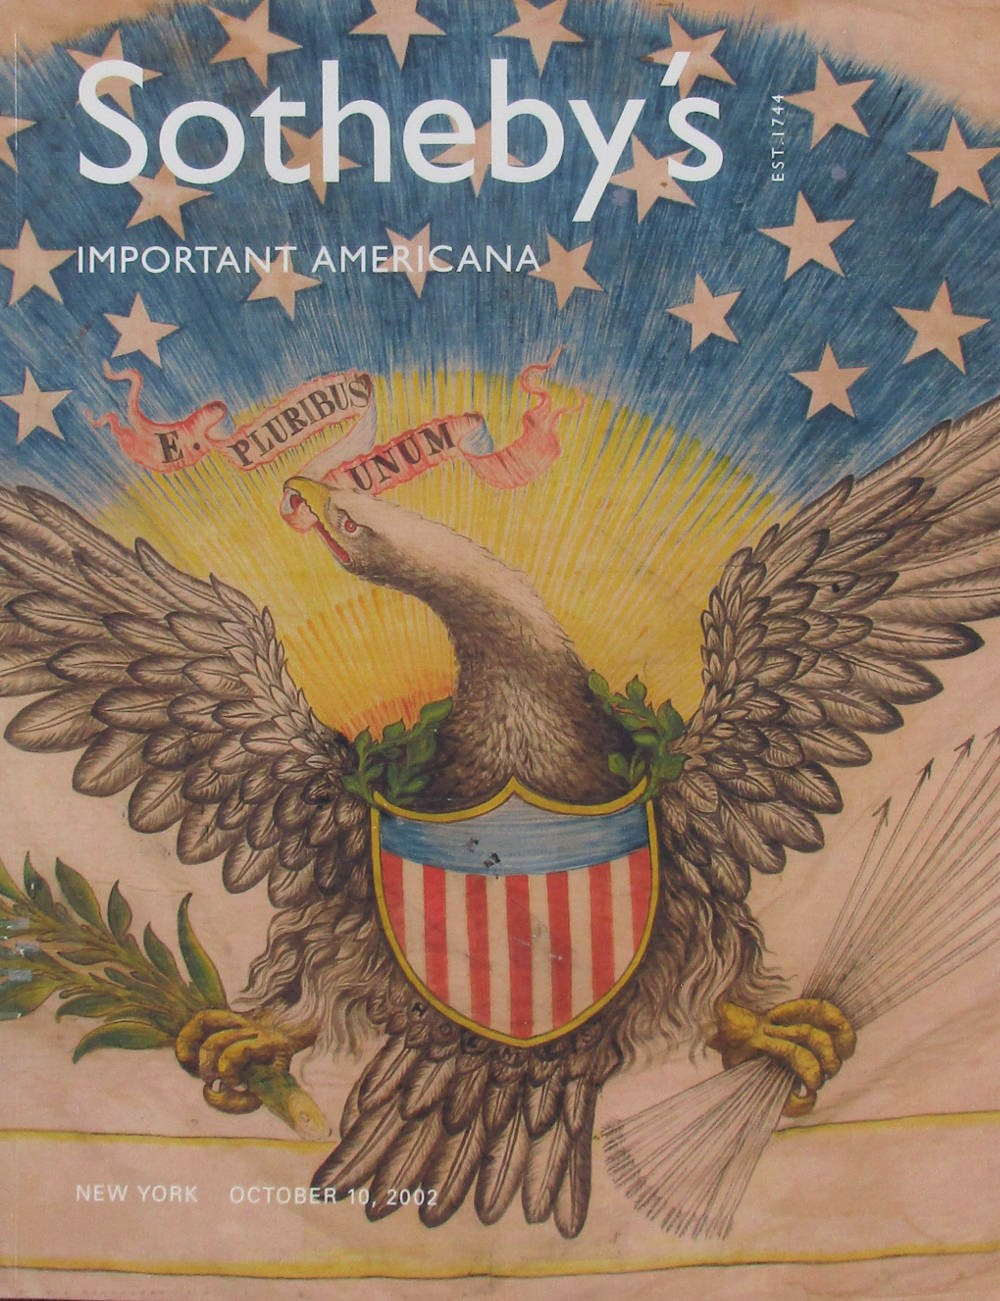 Sotheby's Important Americana Catalog - The Mastai Collection of American Flags and Related Patriotic and Political Memorabilia